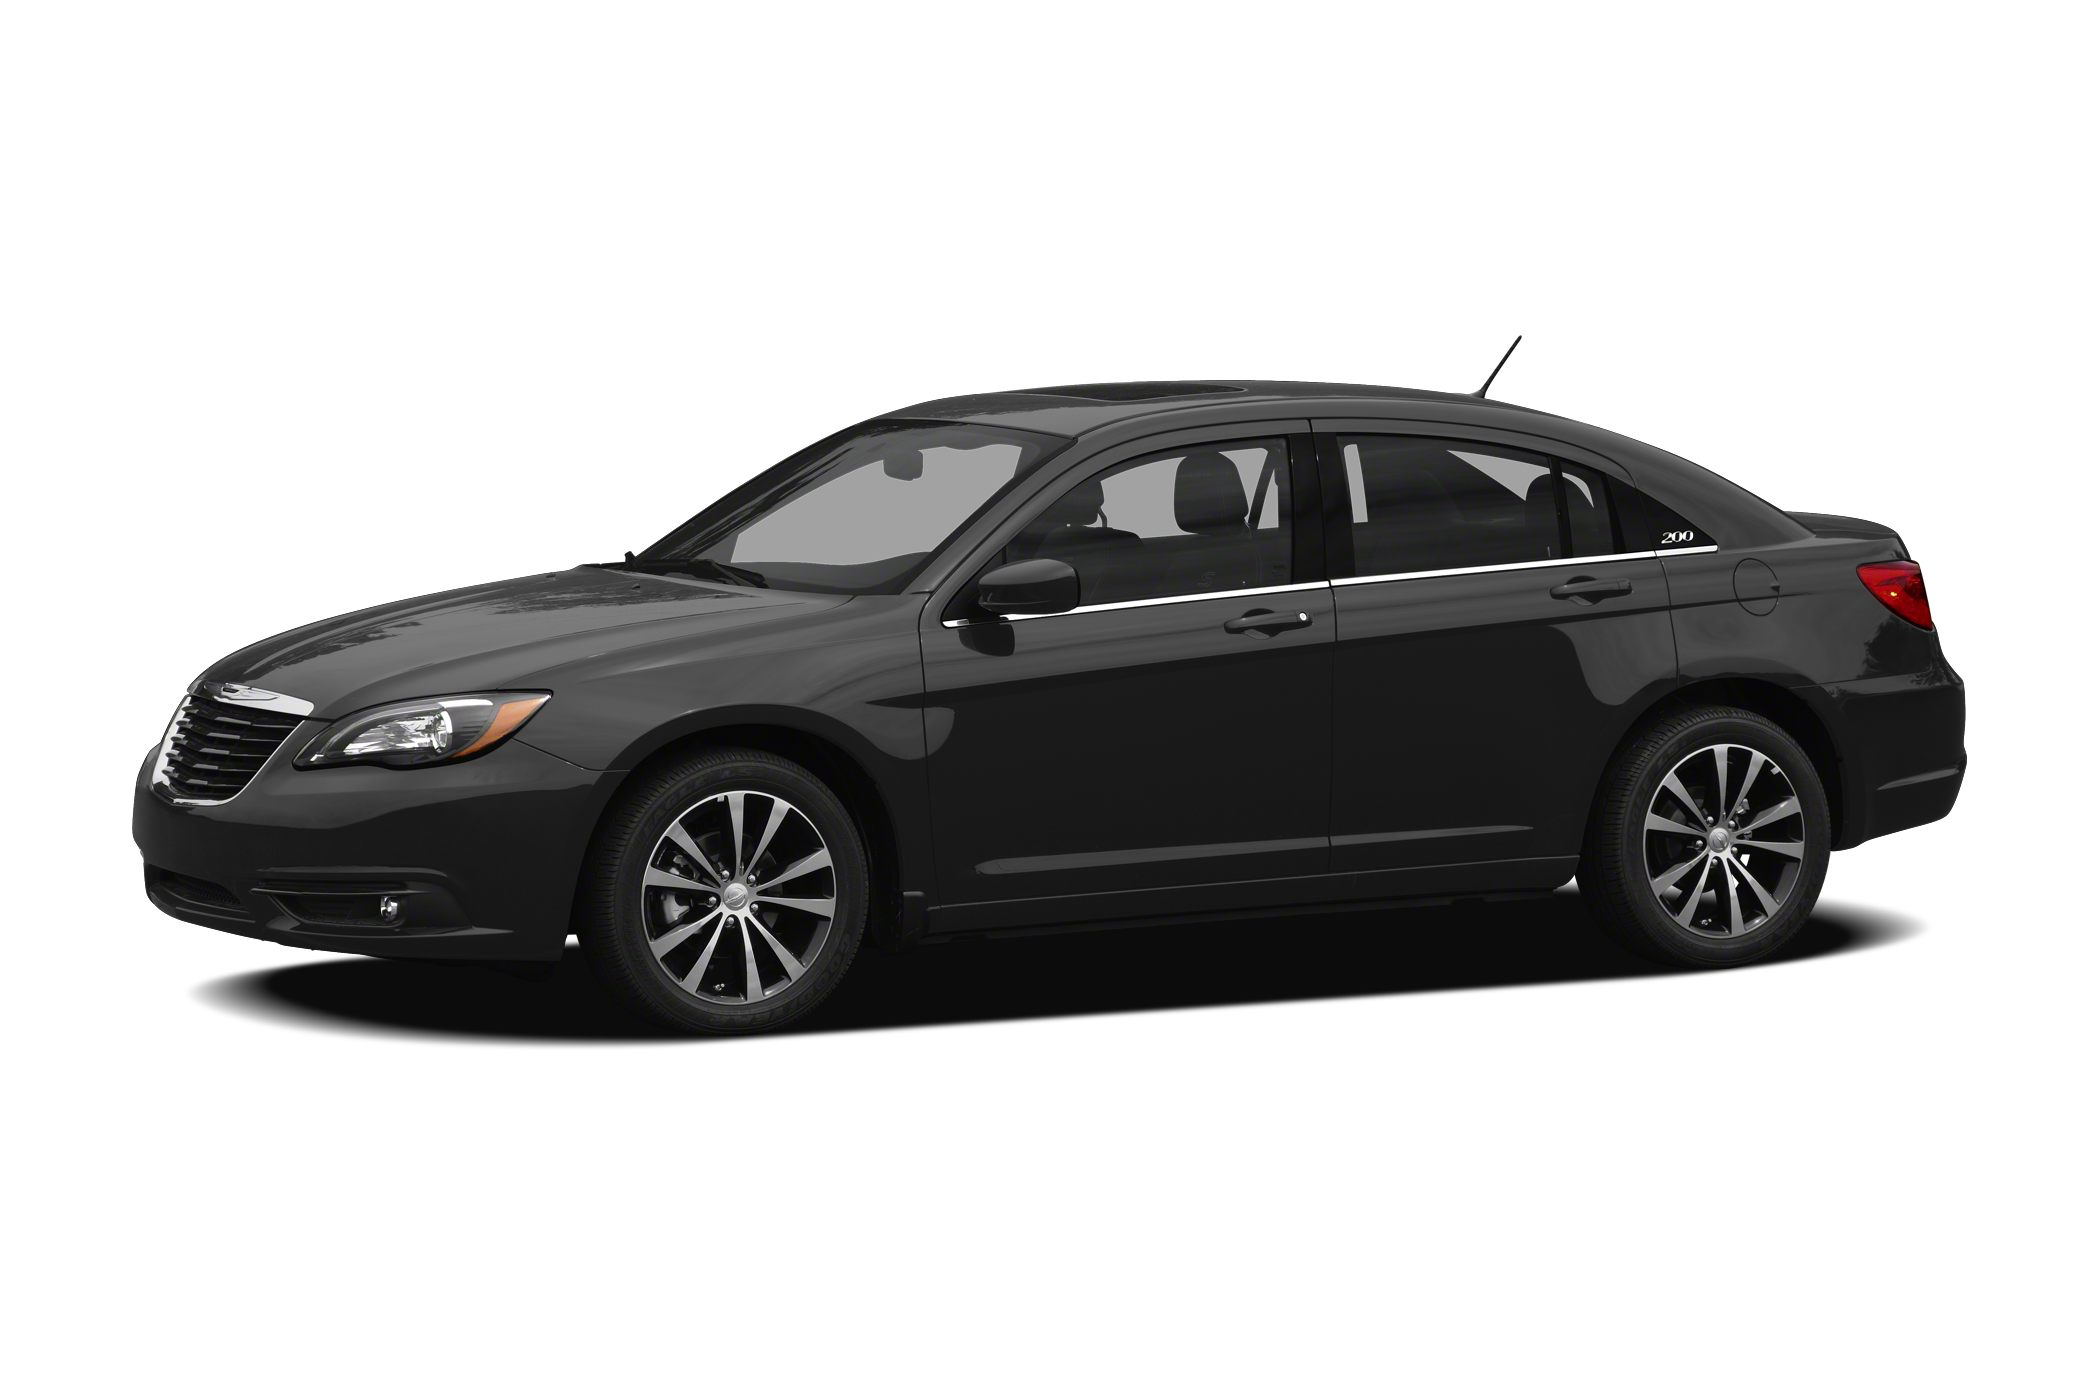 2011 Chrysler 200 S DISCLAIMER We are excited to offer this vehicle to you but it is currently in